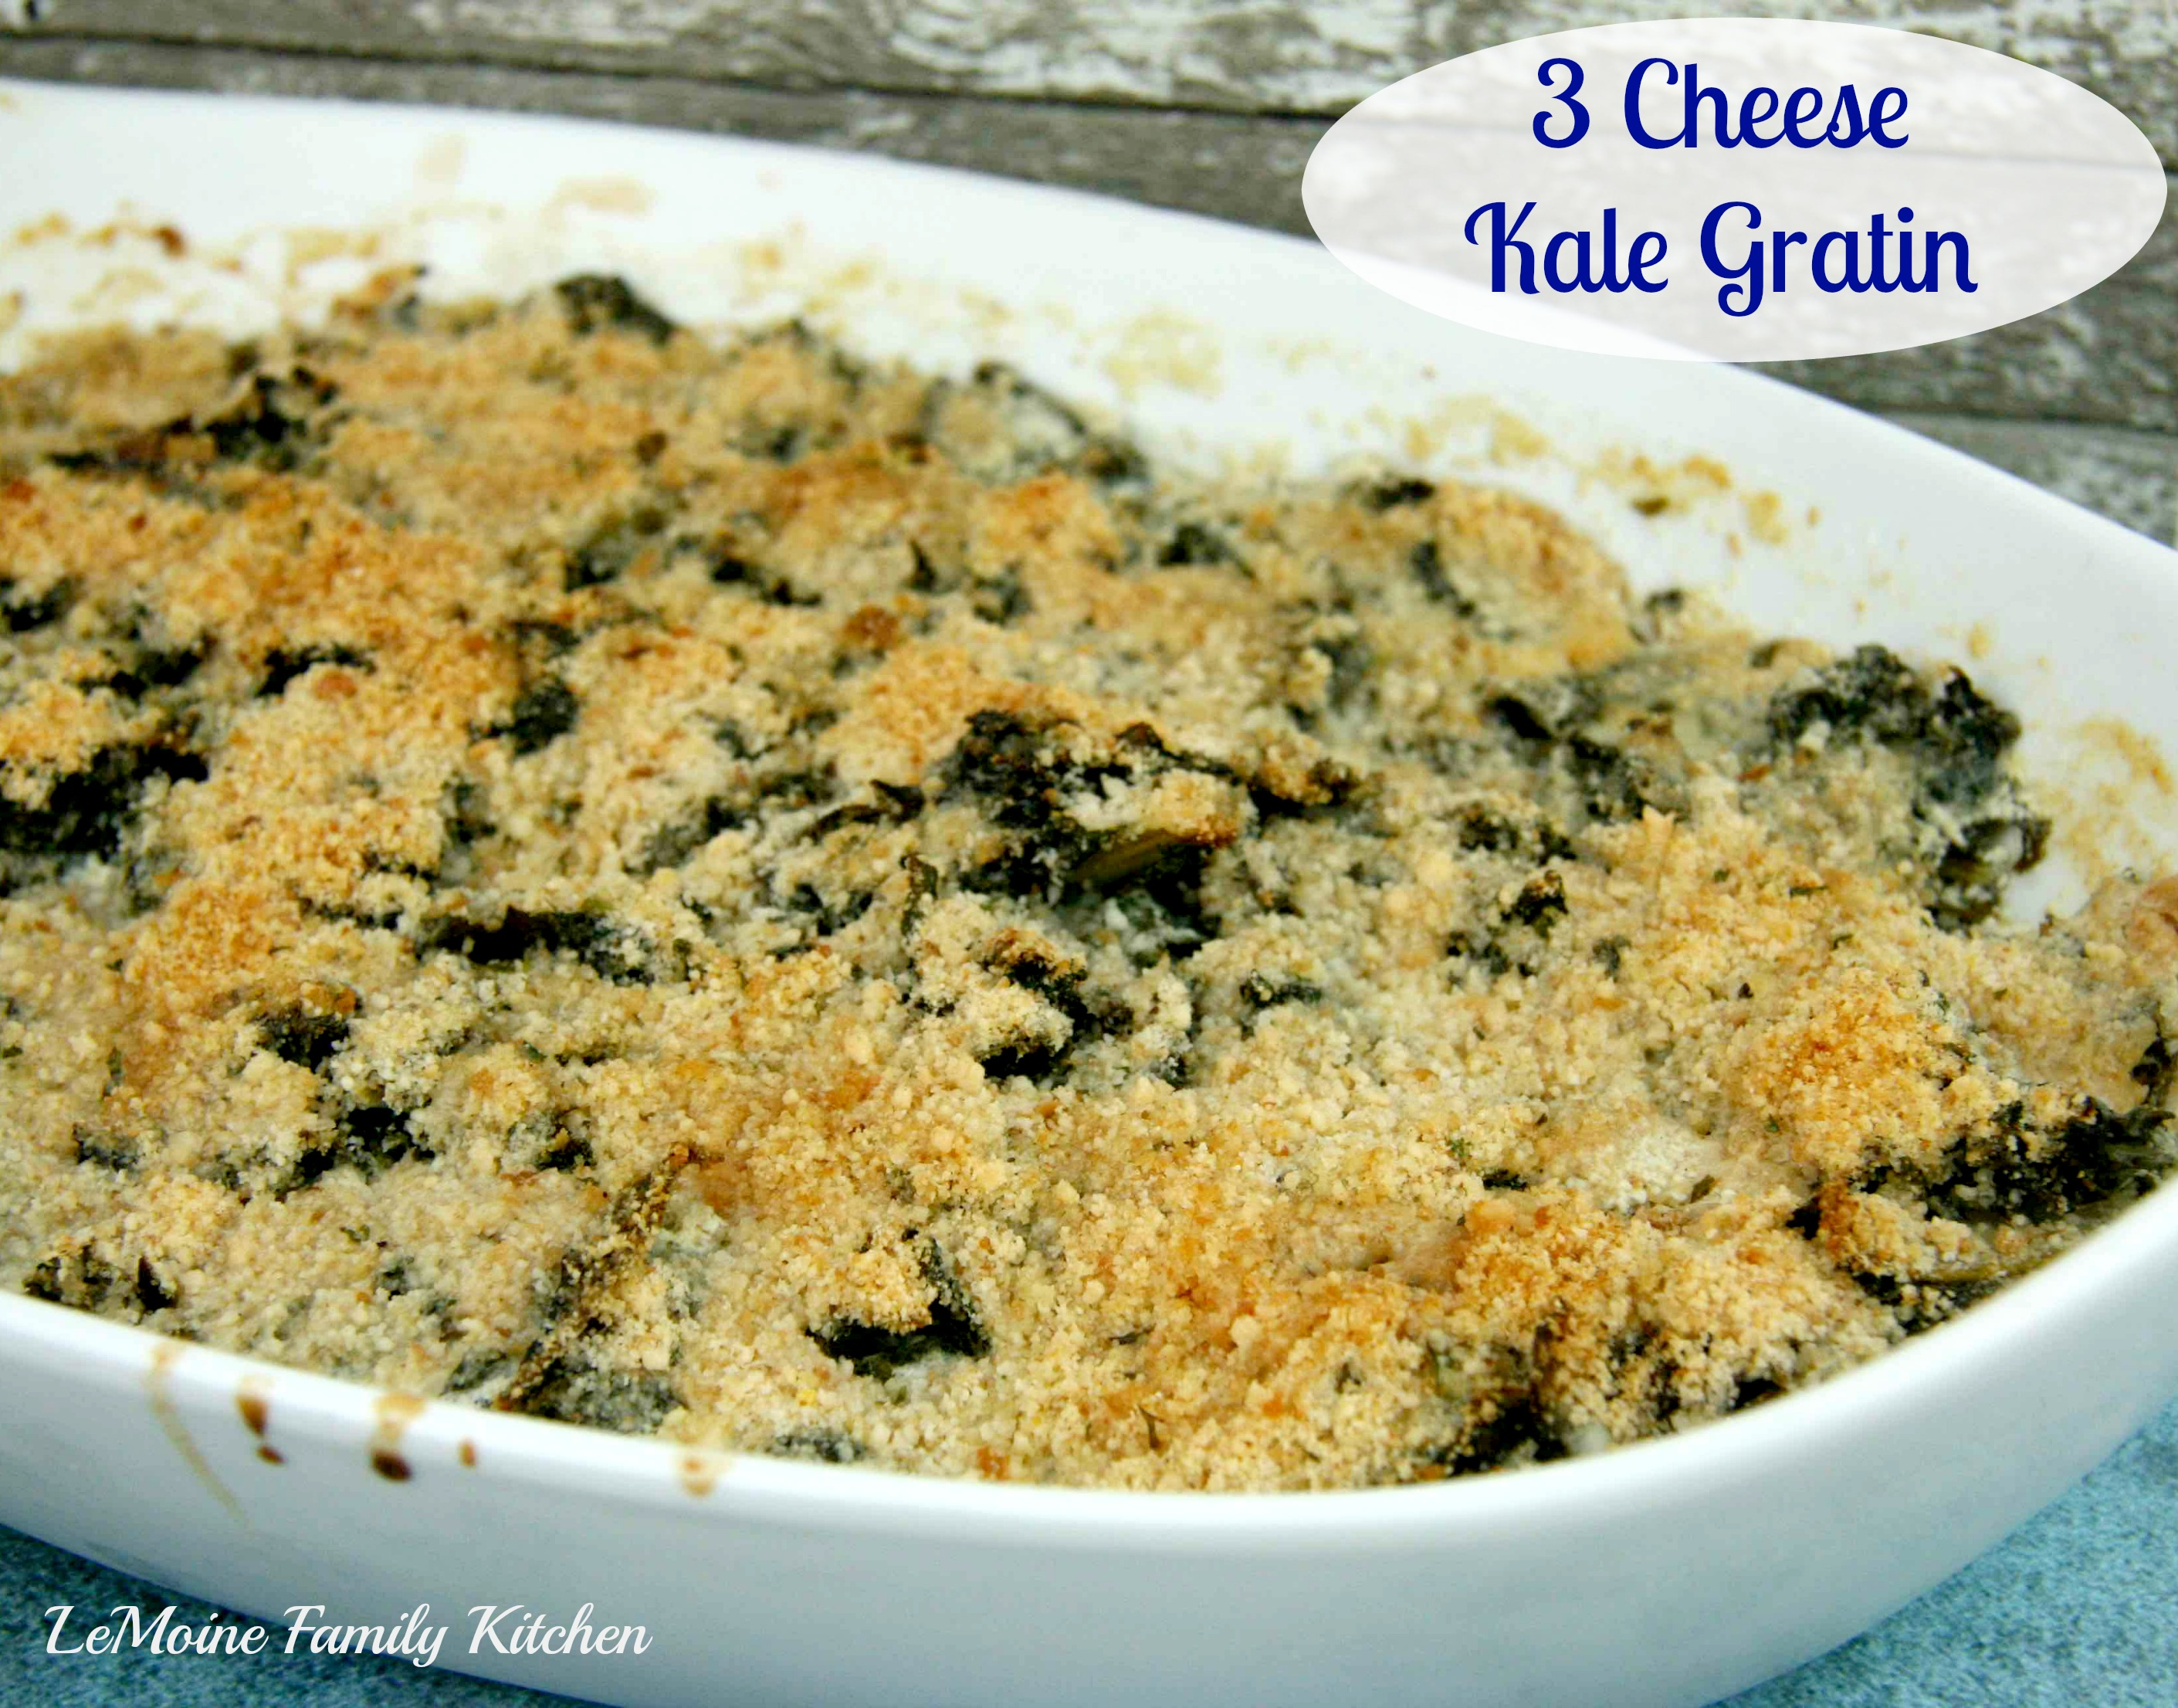 3 Cheese Kale Gratin | LeMoine Family Kitchen #kale #sidedish #thanksgiving #holiday #vegetable #cheese